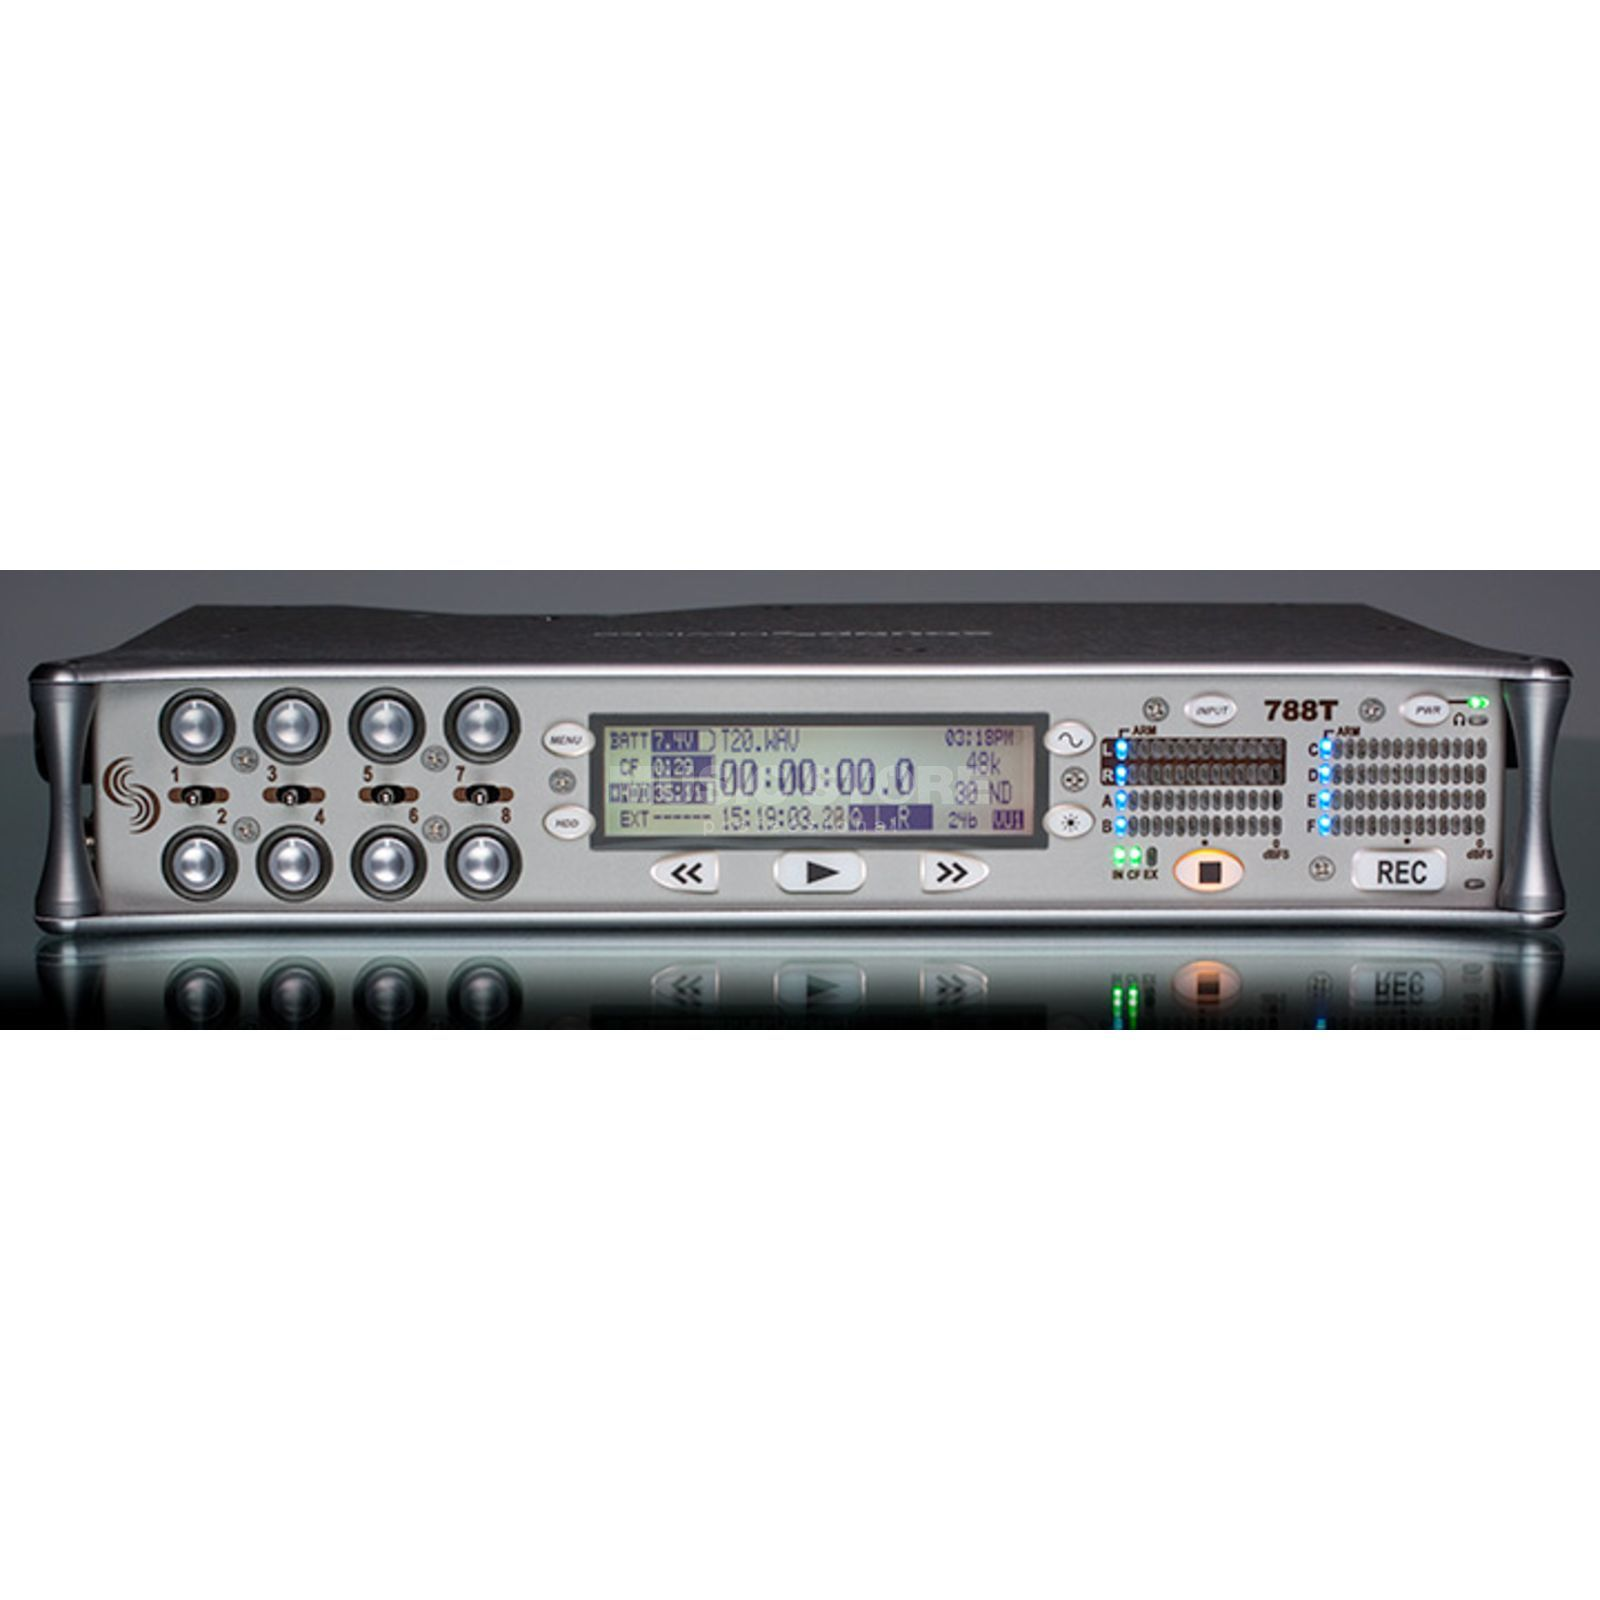 Sounddevices 788T SSD Dig. Audio Recorder  Produktbillede